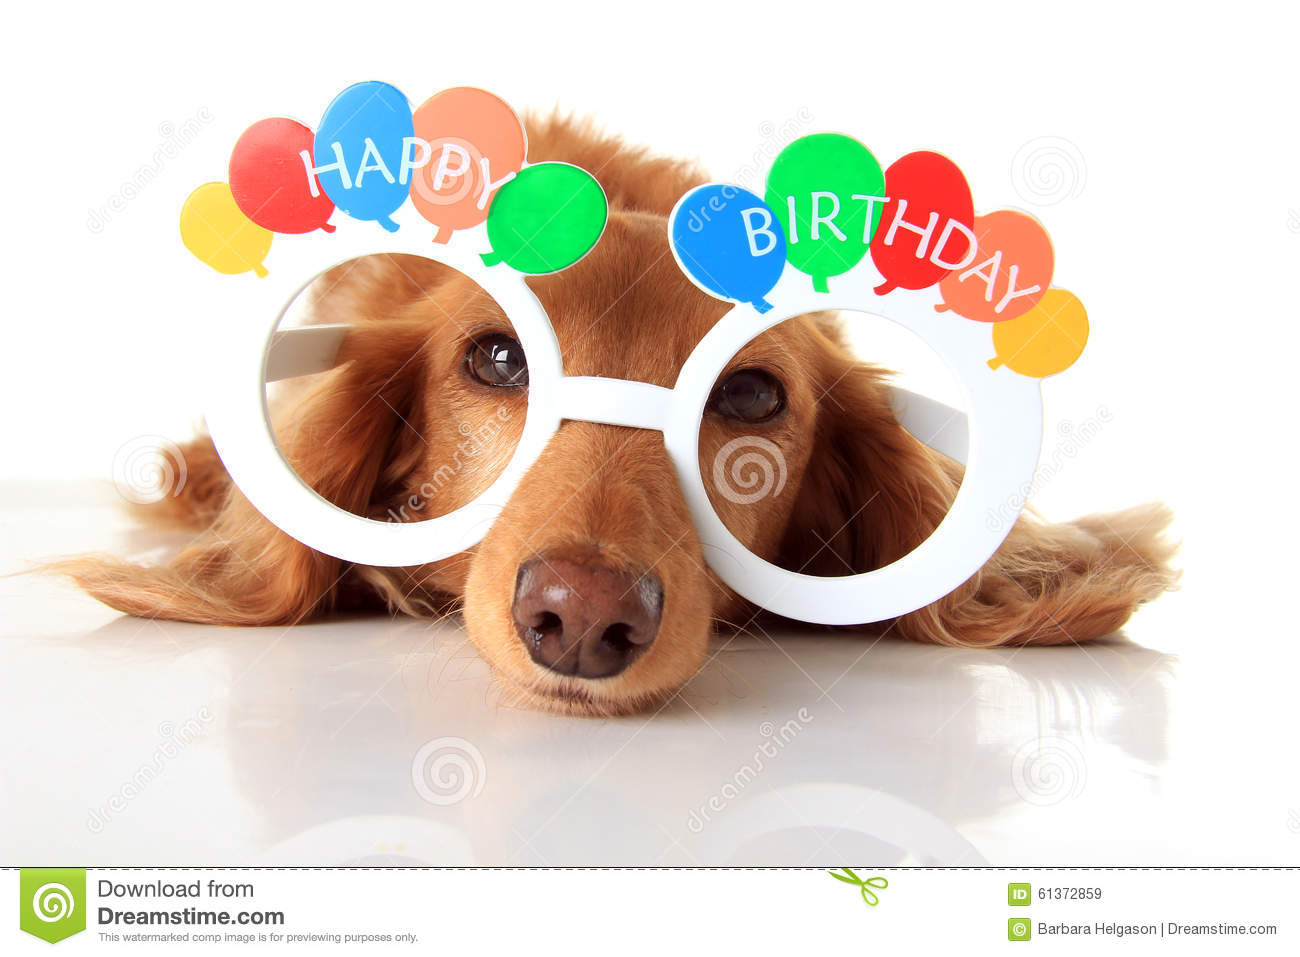 happy birthday dog images free ; happy-birthday-dog-dachshund-puppy-wearing-glasses-also-available-vertical-61372859